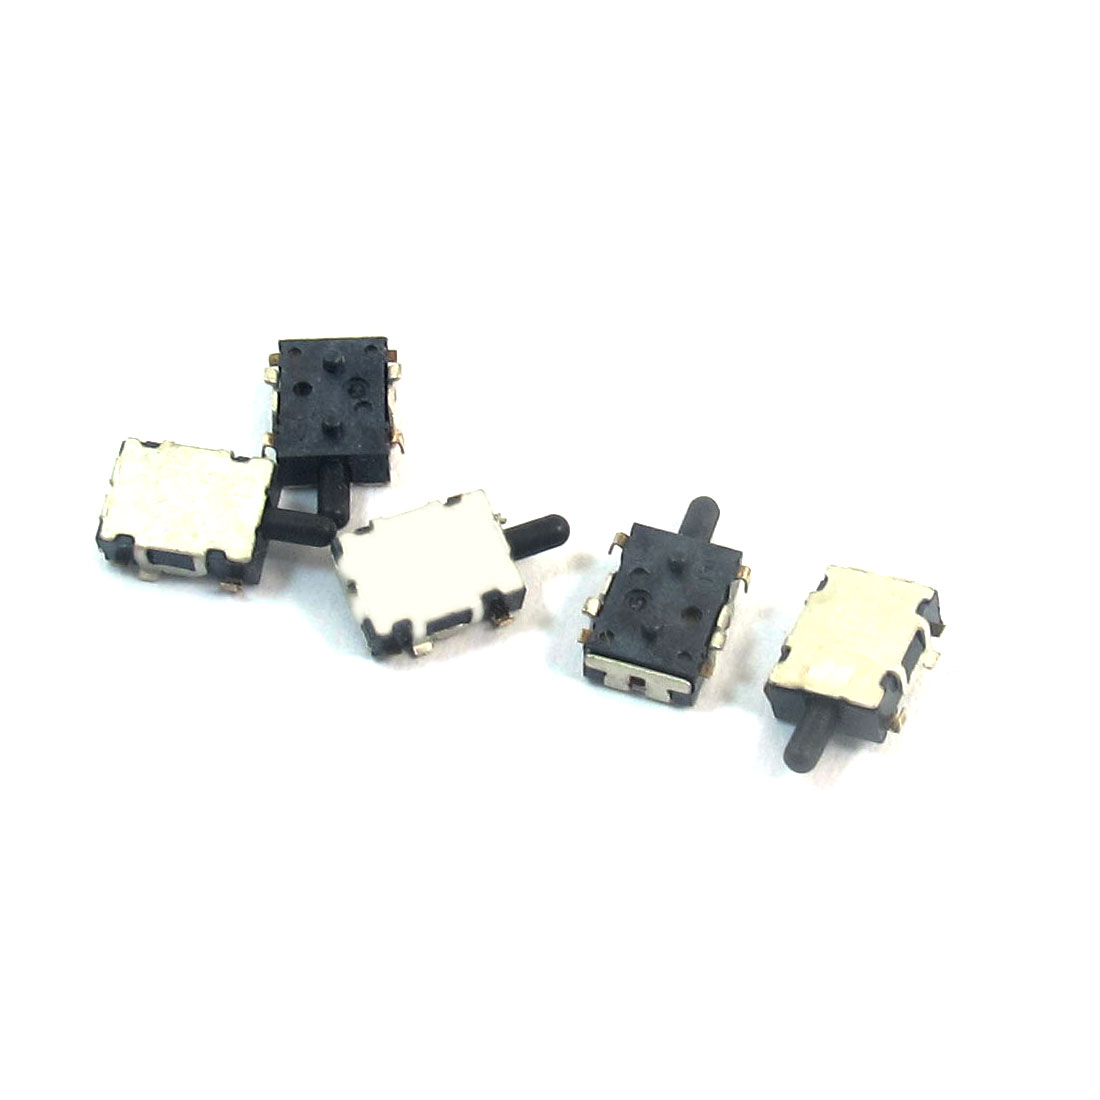 5Pcs SMD SMT PCB 4-Terminal Momentary Push Button Mini Tact Switch 6x5x2.5mm